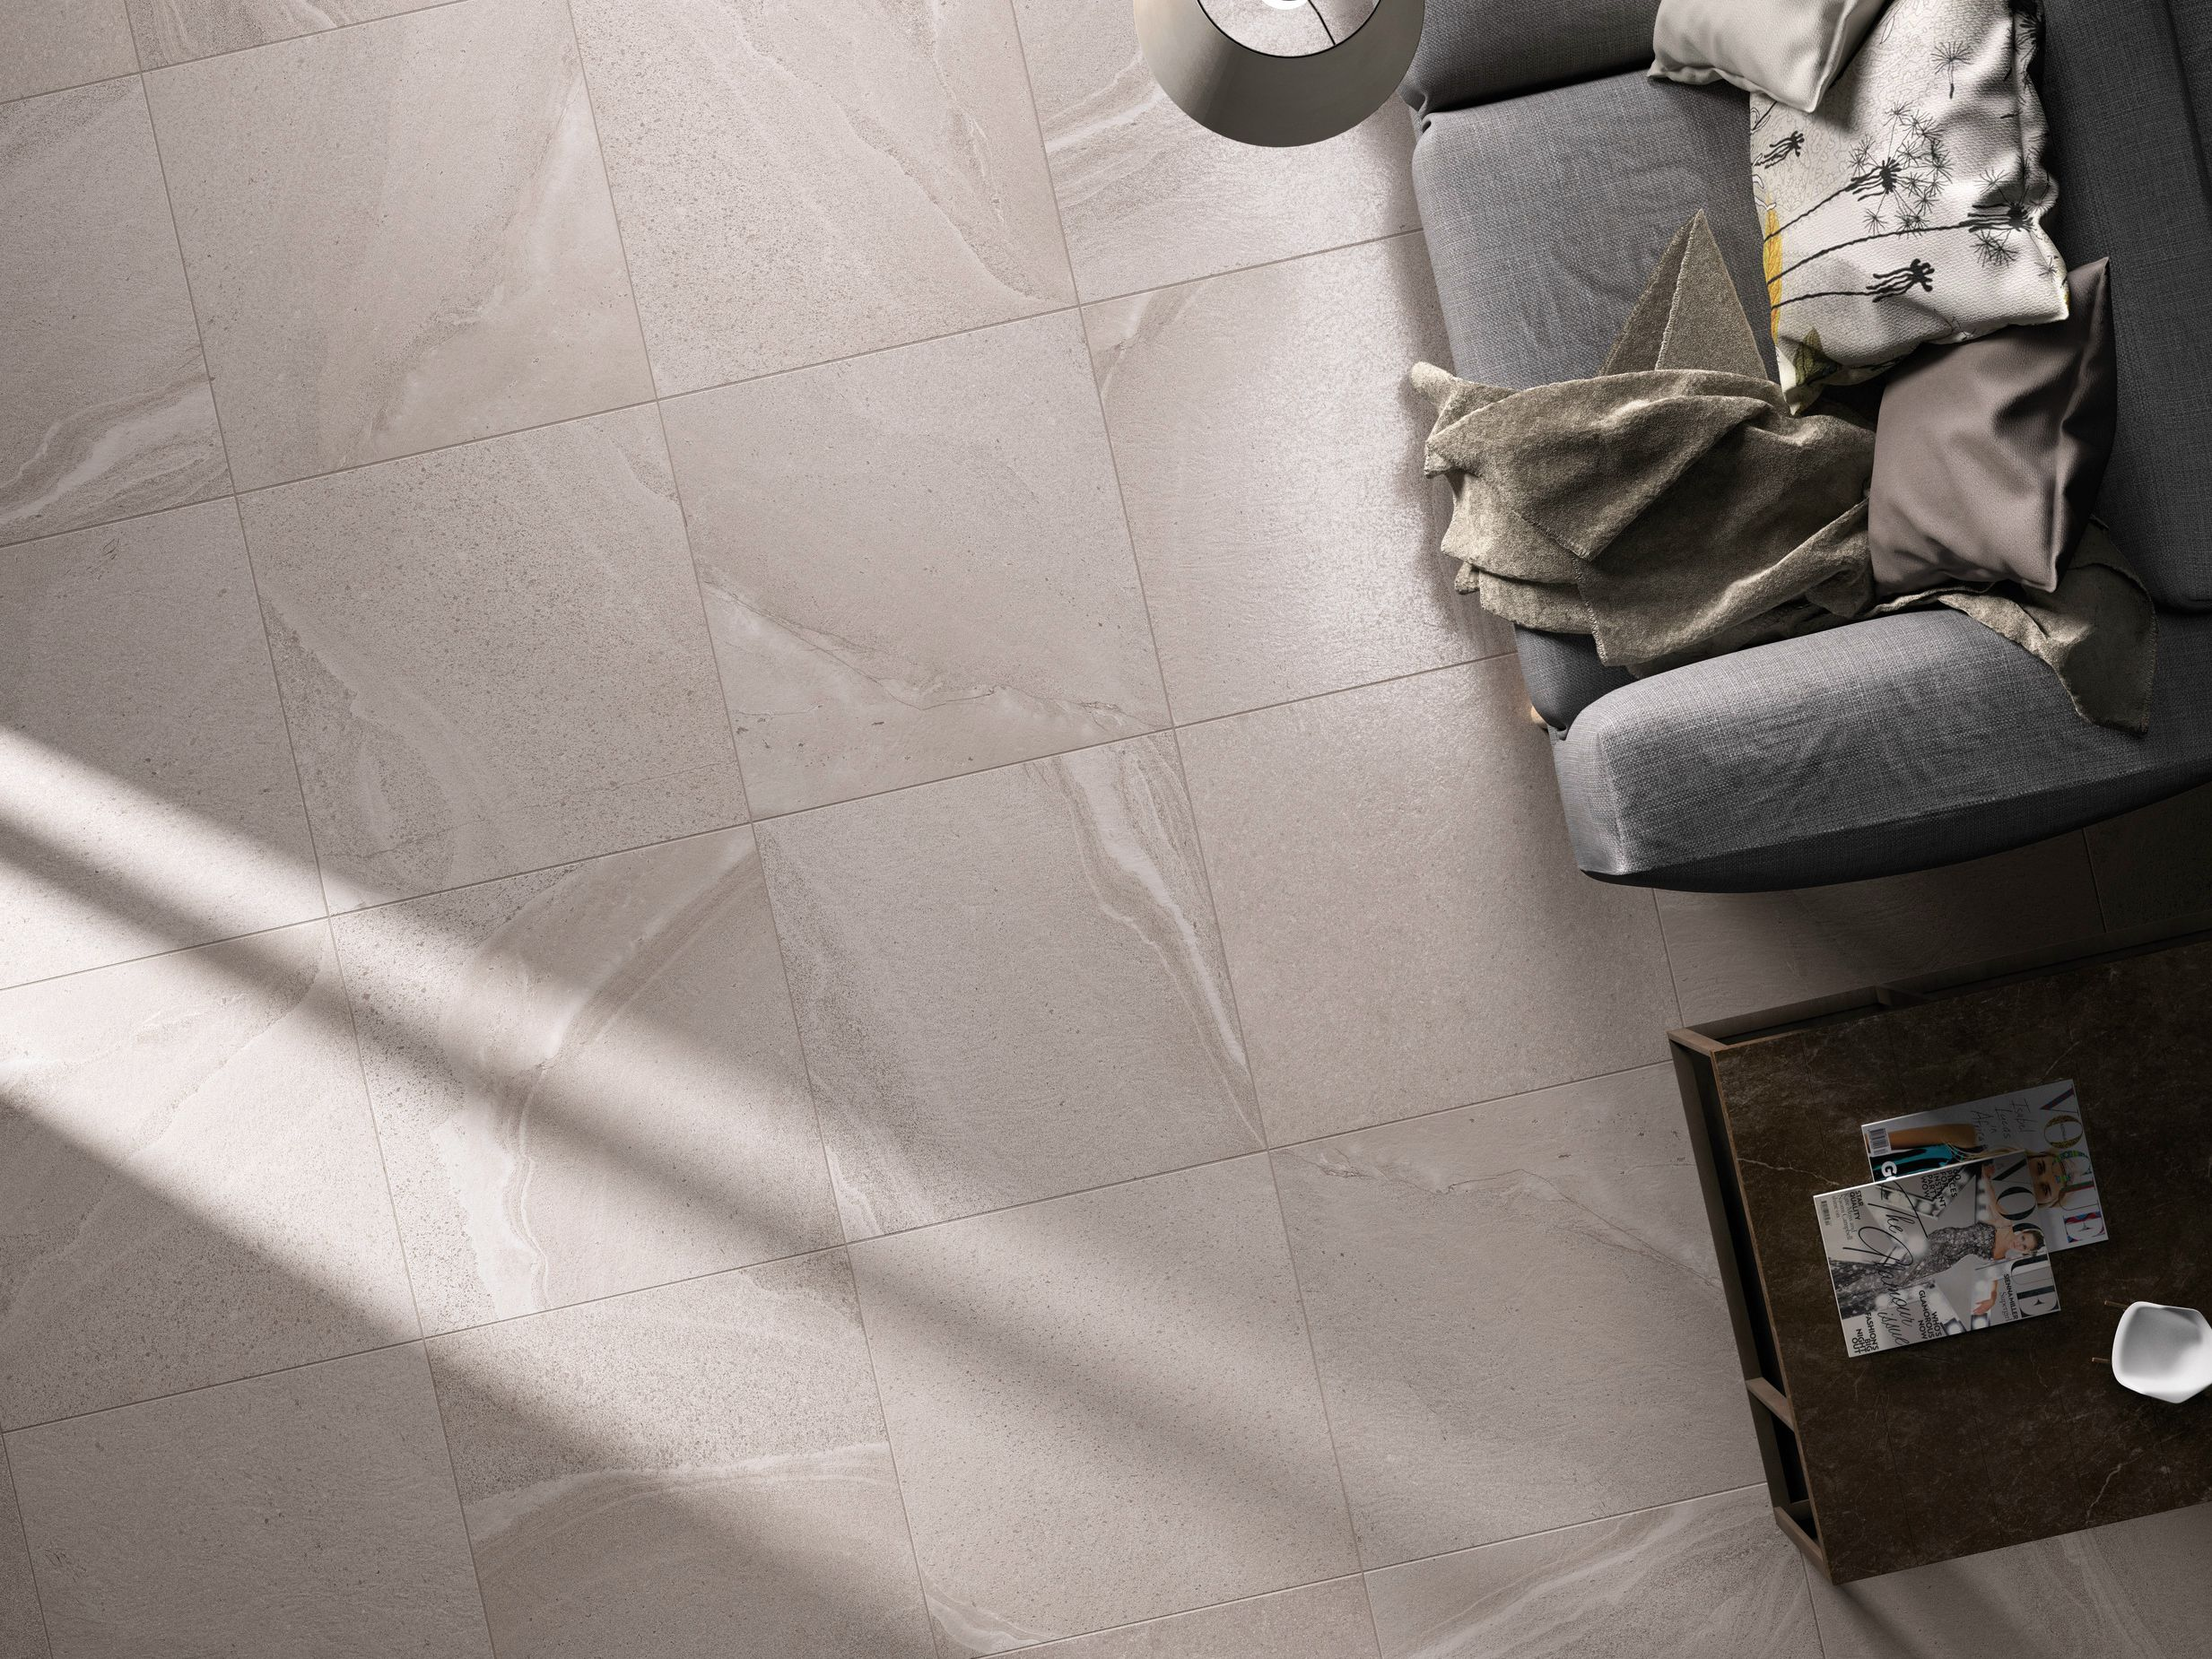 La nuova nata di casa abk re work httpsirtwebp141 no 1148 hard wearing floor tile range dailygadgetfo Choice Image